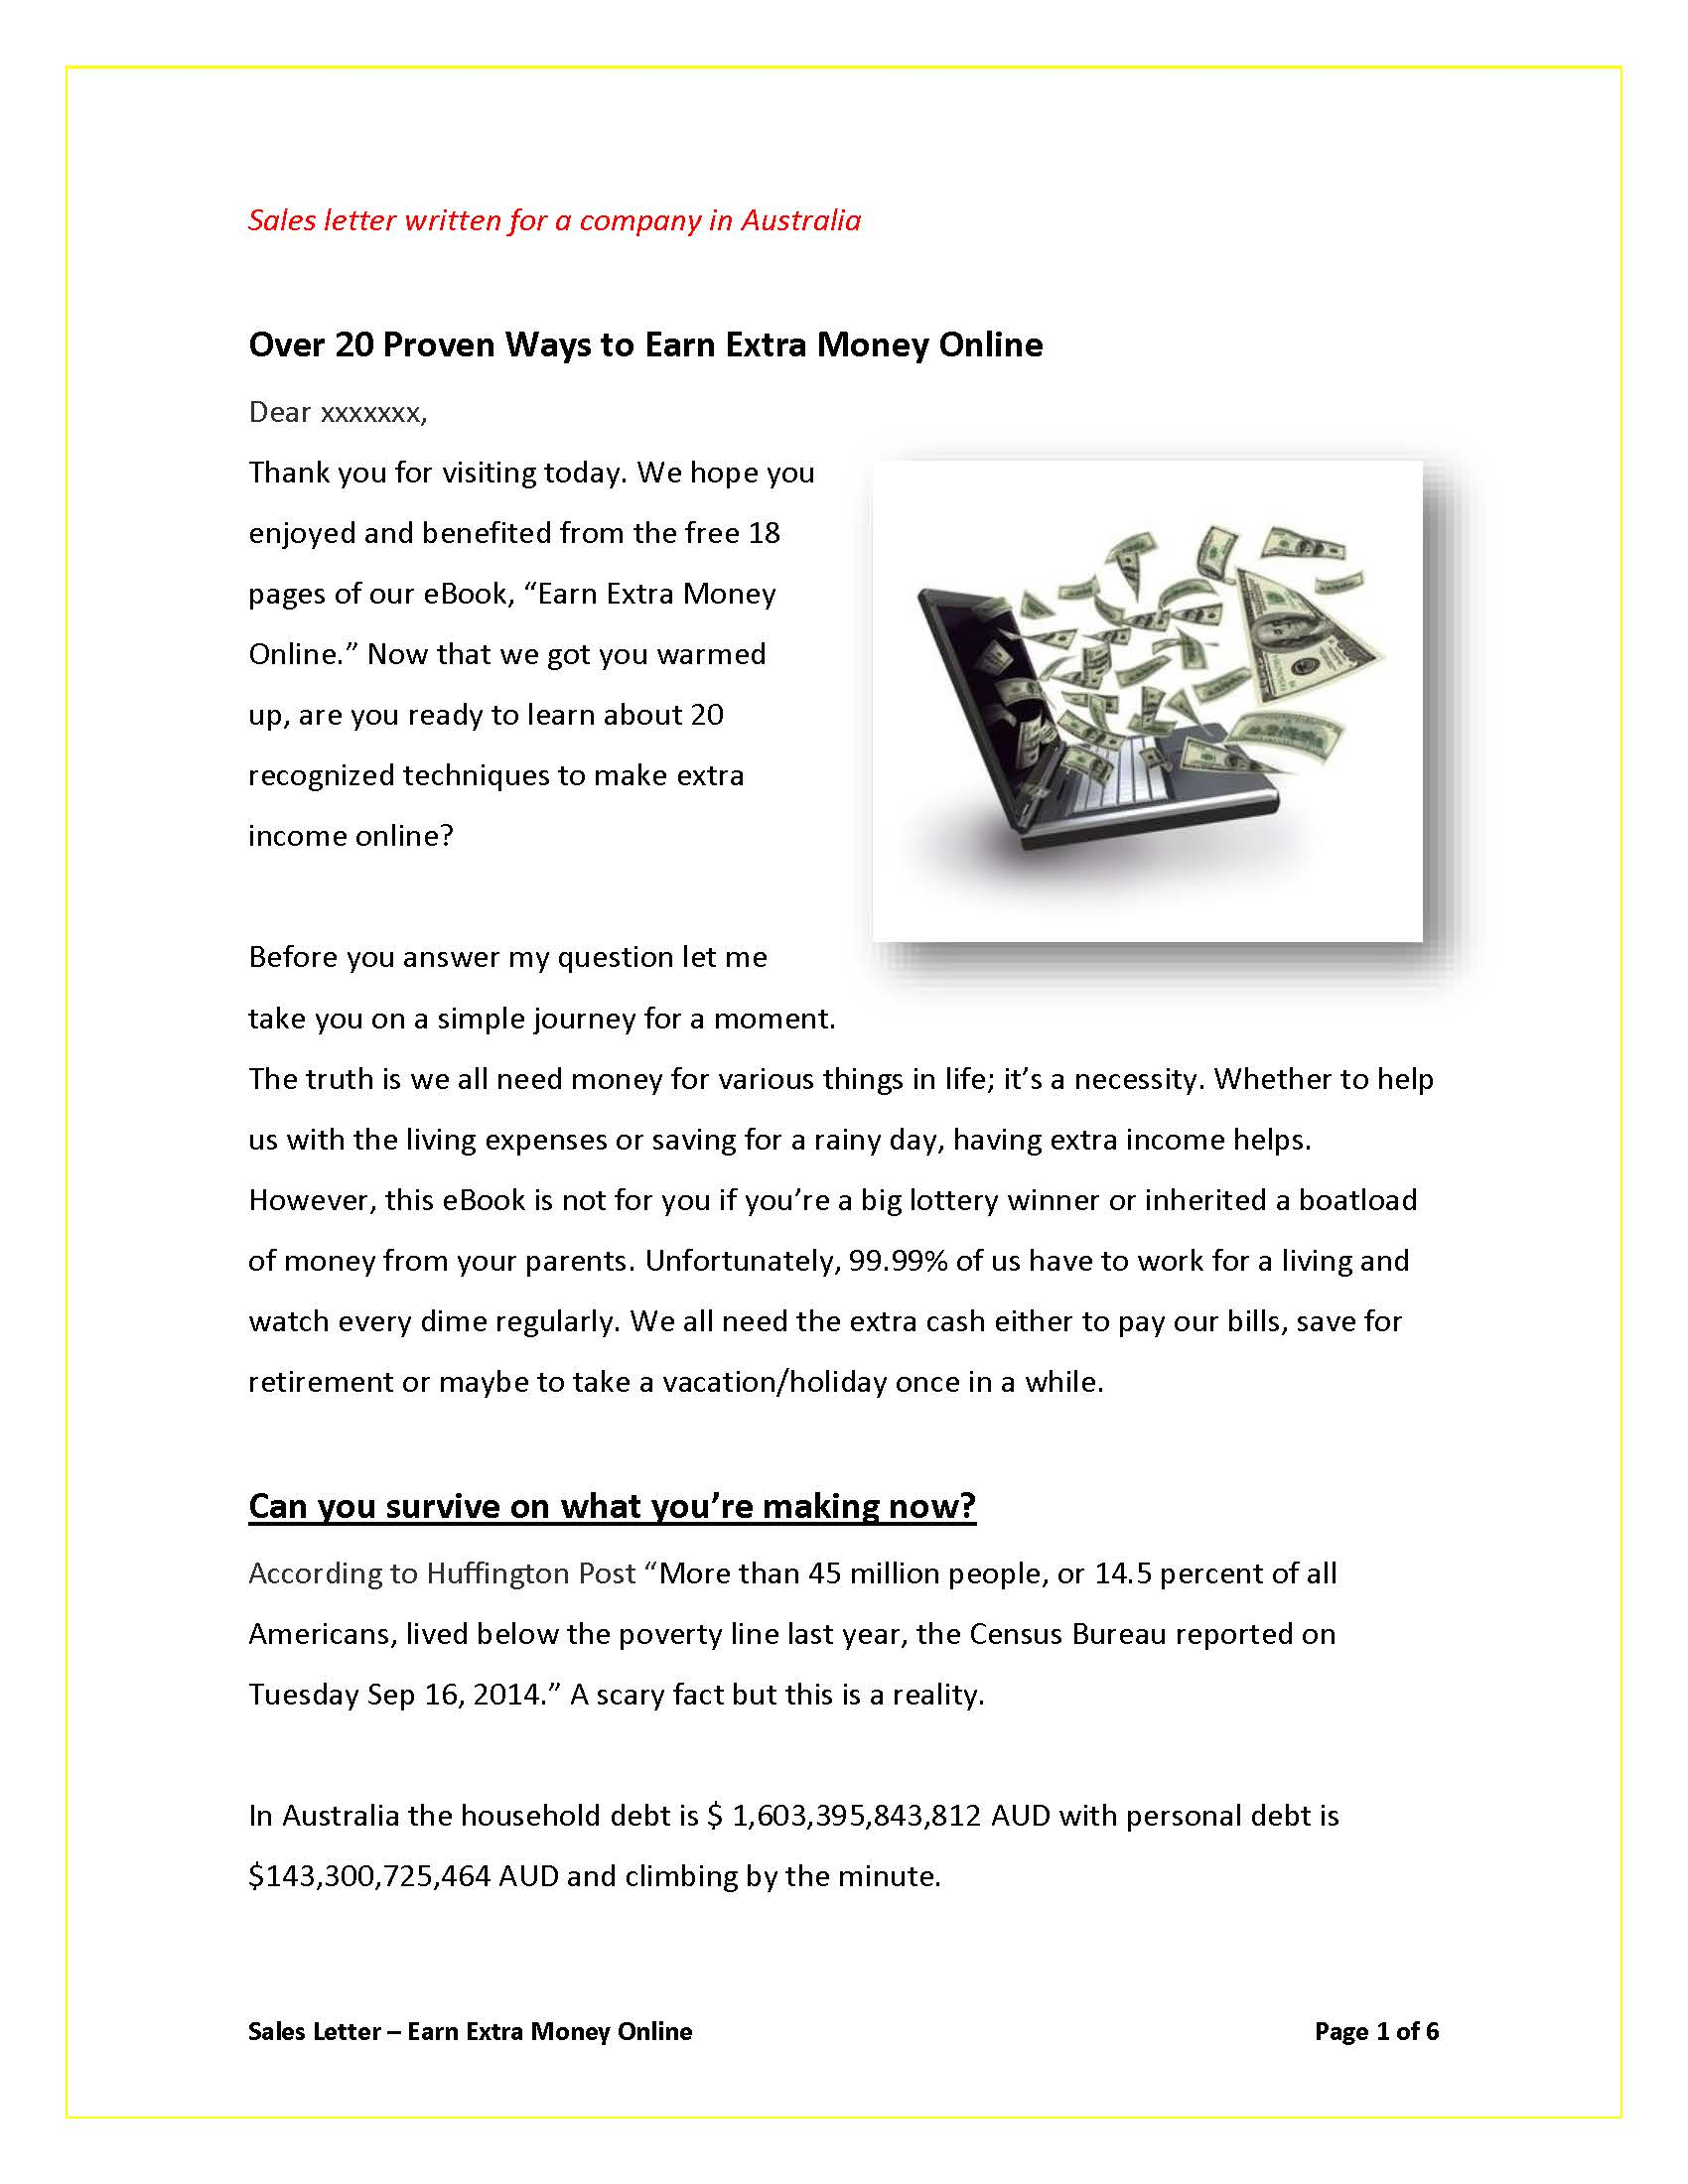 Sales Letter How To Earn Money Online_page_1 Sales Letters Grovers  Copywriting